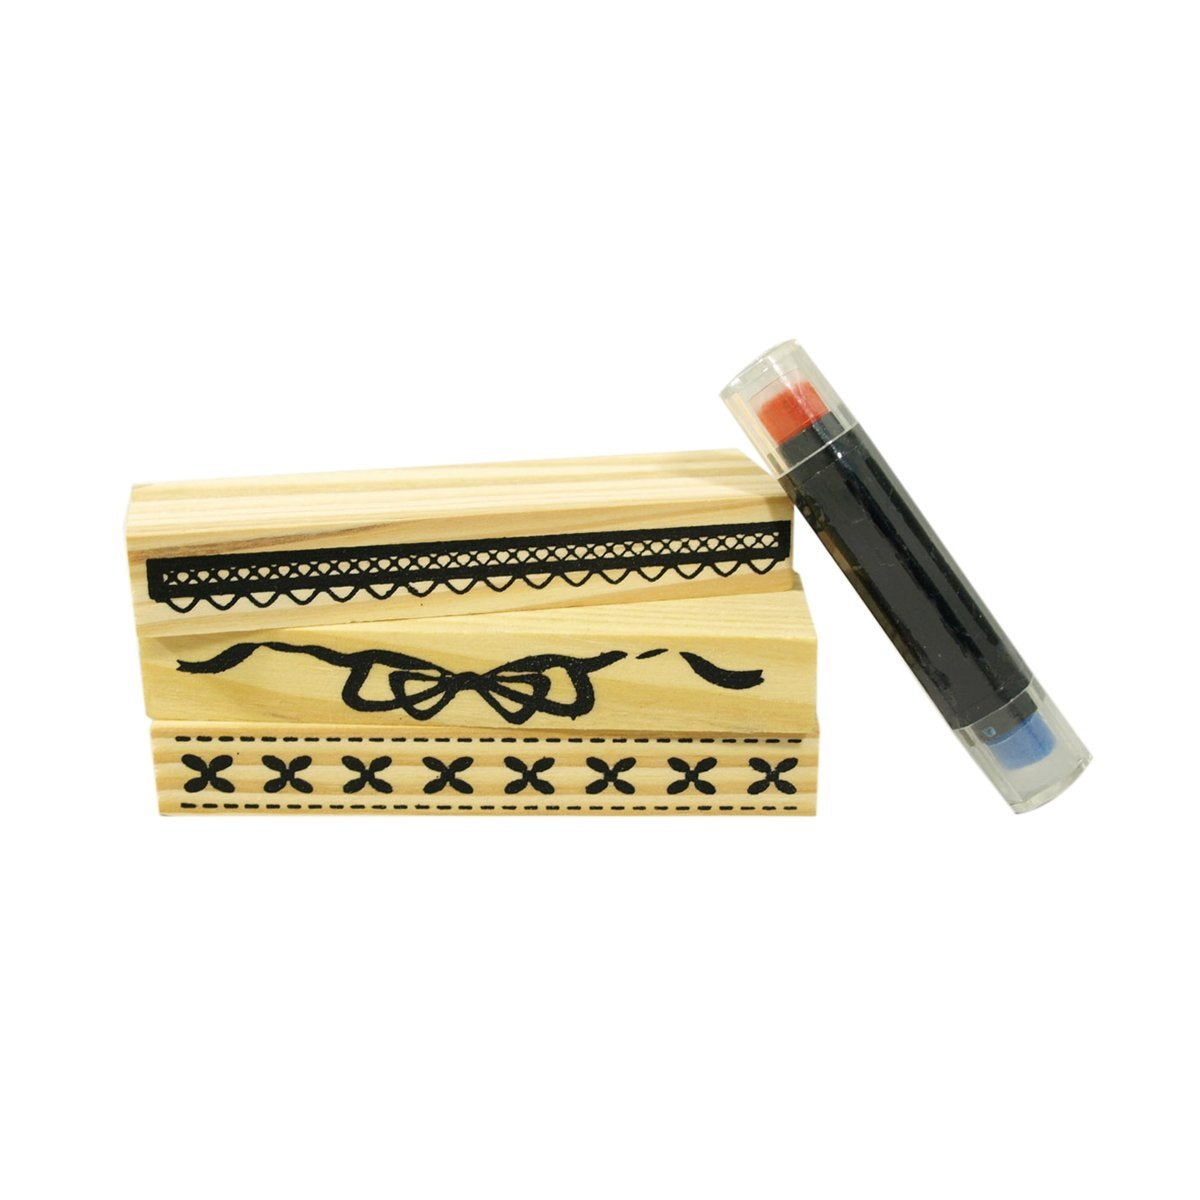 Decorative Borders Rubber Stamp Set, 3pcs set + 1 ink pen